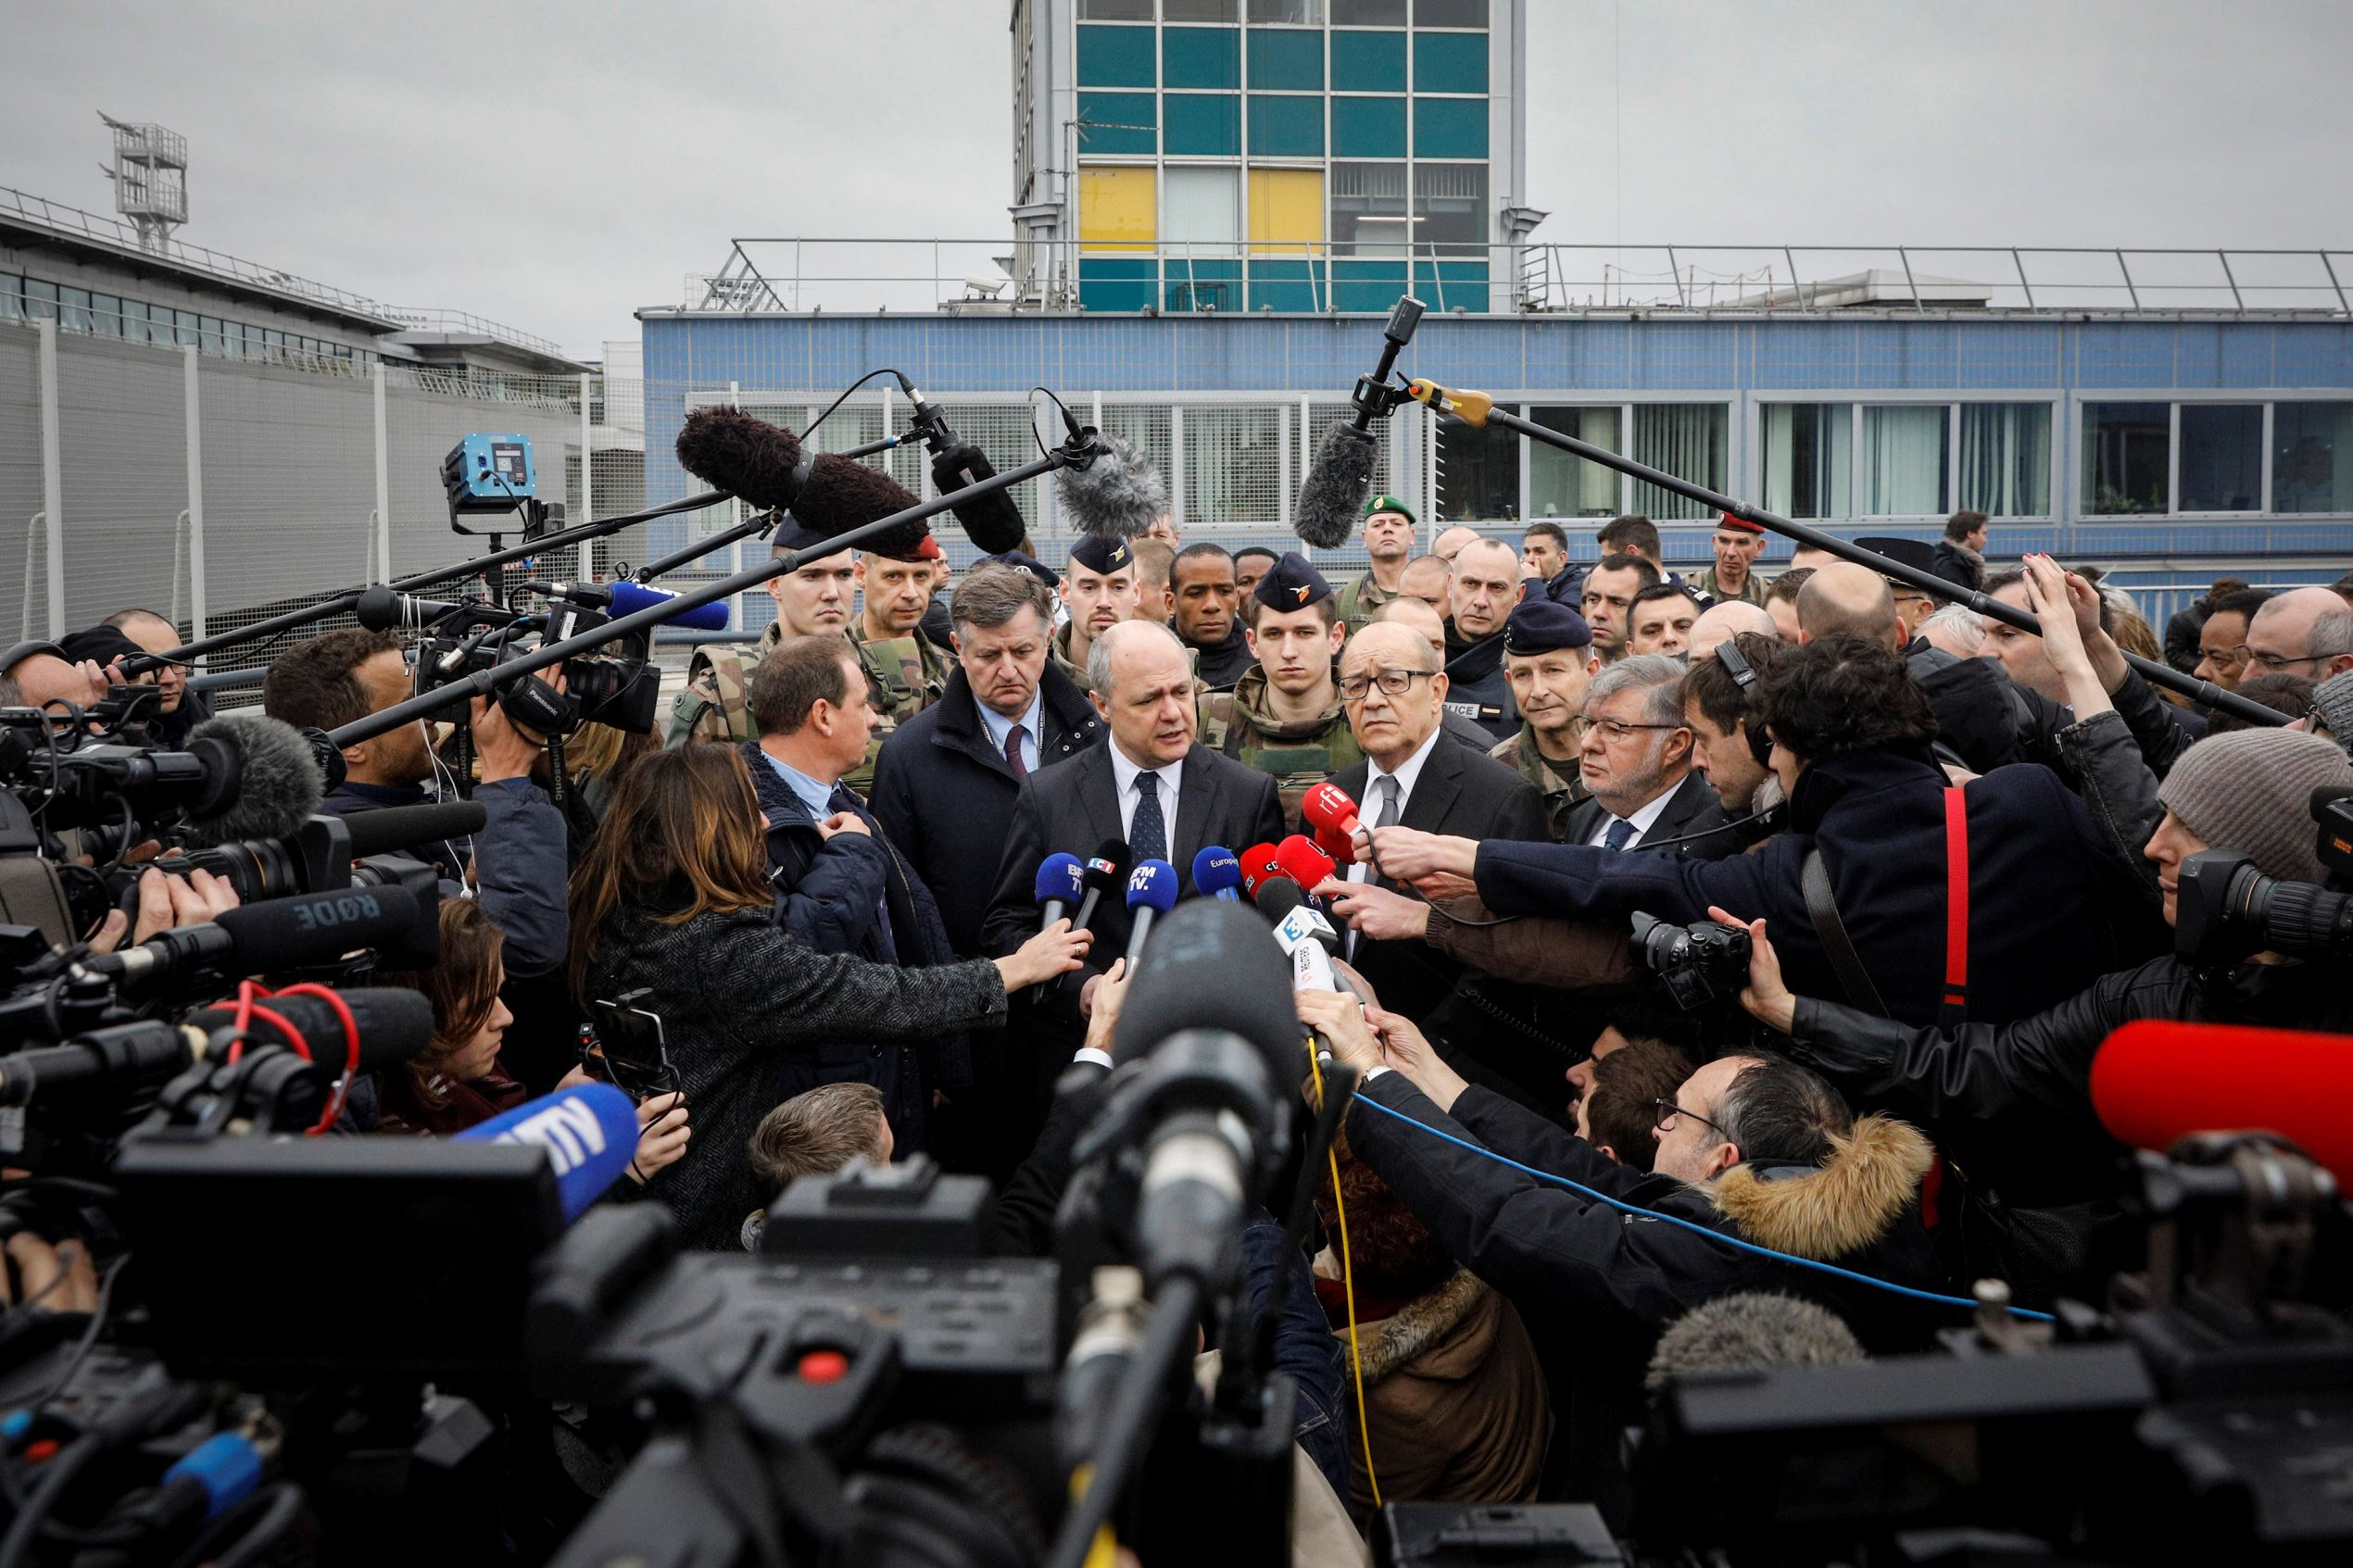 Slide 9 of 14: French Interior Minister Bruno le Roux, center left, and French Defense Minister Jean-Yves le Drian, center right, answer reporters at Orly airport, south of Paris, Saturday, March, 18, 2017. A man was shot to death Saturday after trying to seize the weapon of a soldier guarding Paris' Orly Airport, prompting a partial evacuation of the terminal, police said.